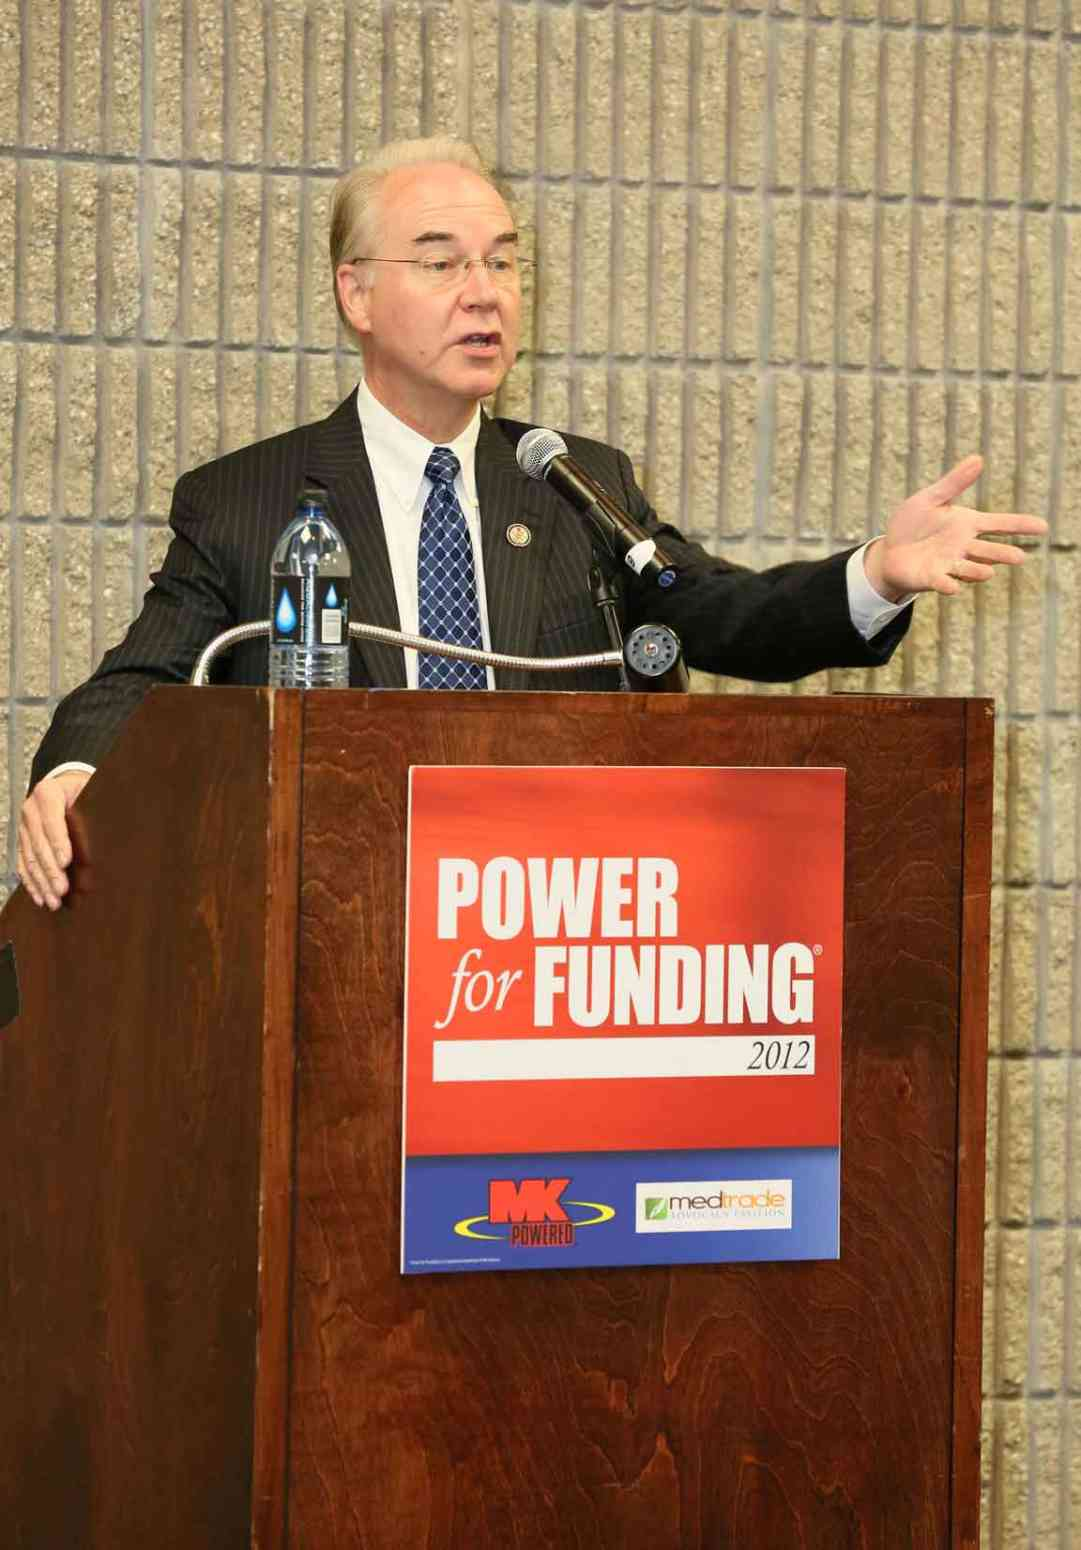 Congressman Tom Price (GA), MK Battery Power for Funding Reception-Medtrade 2012